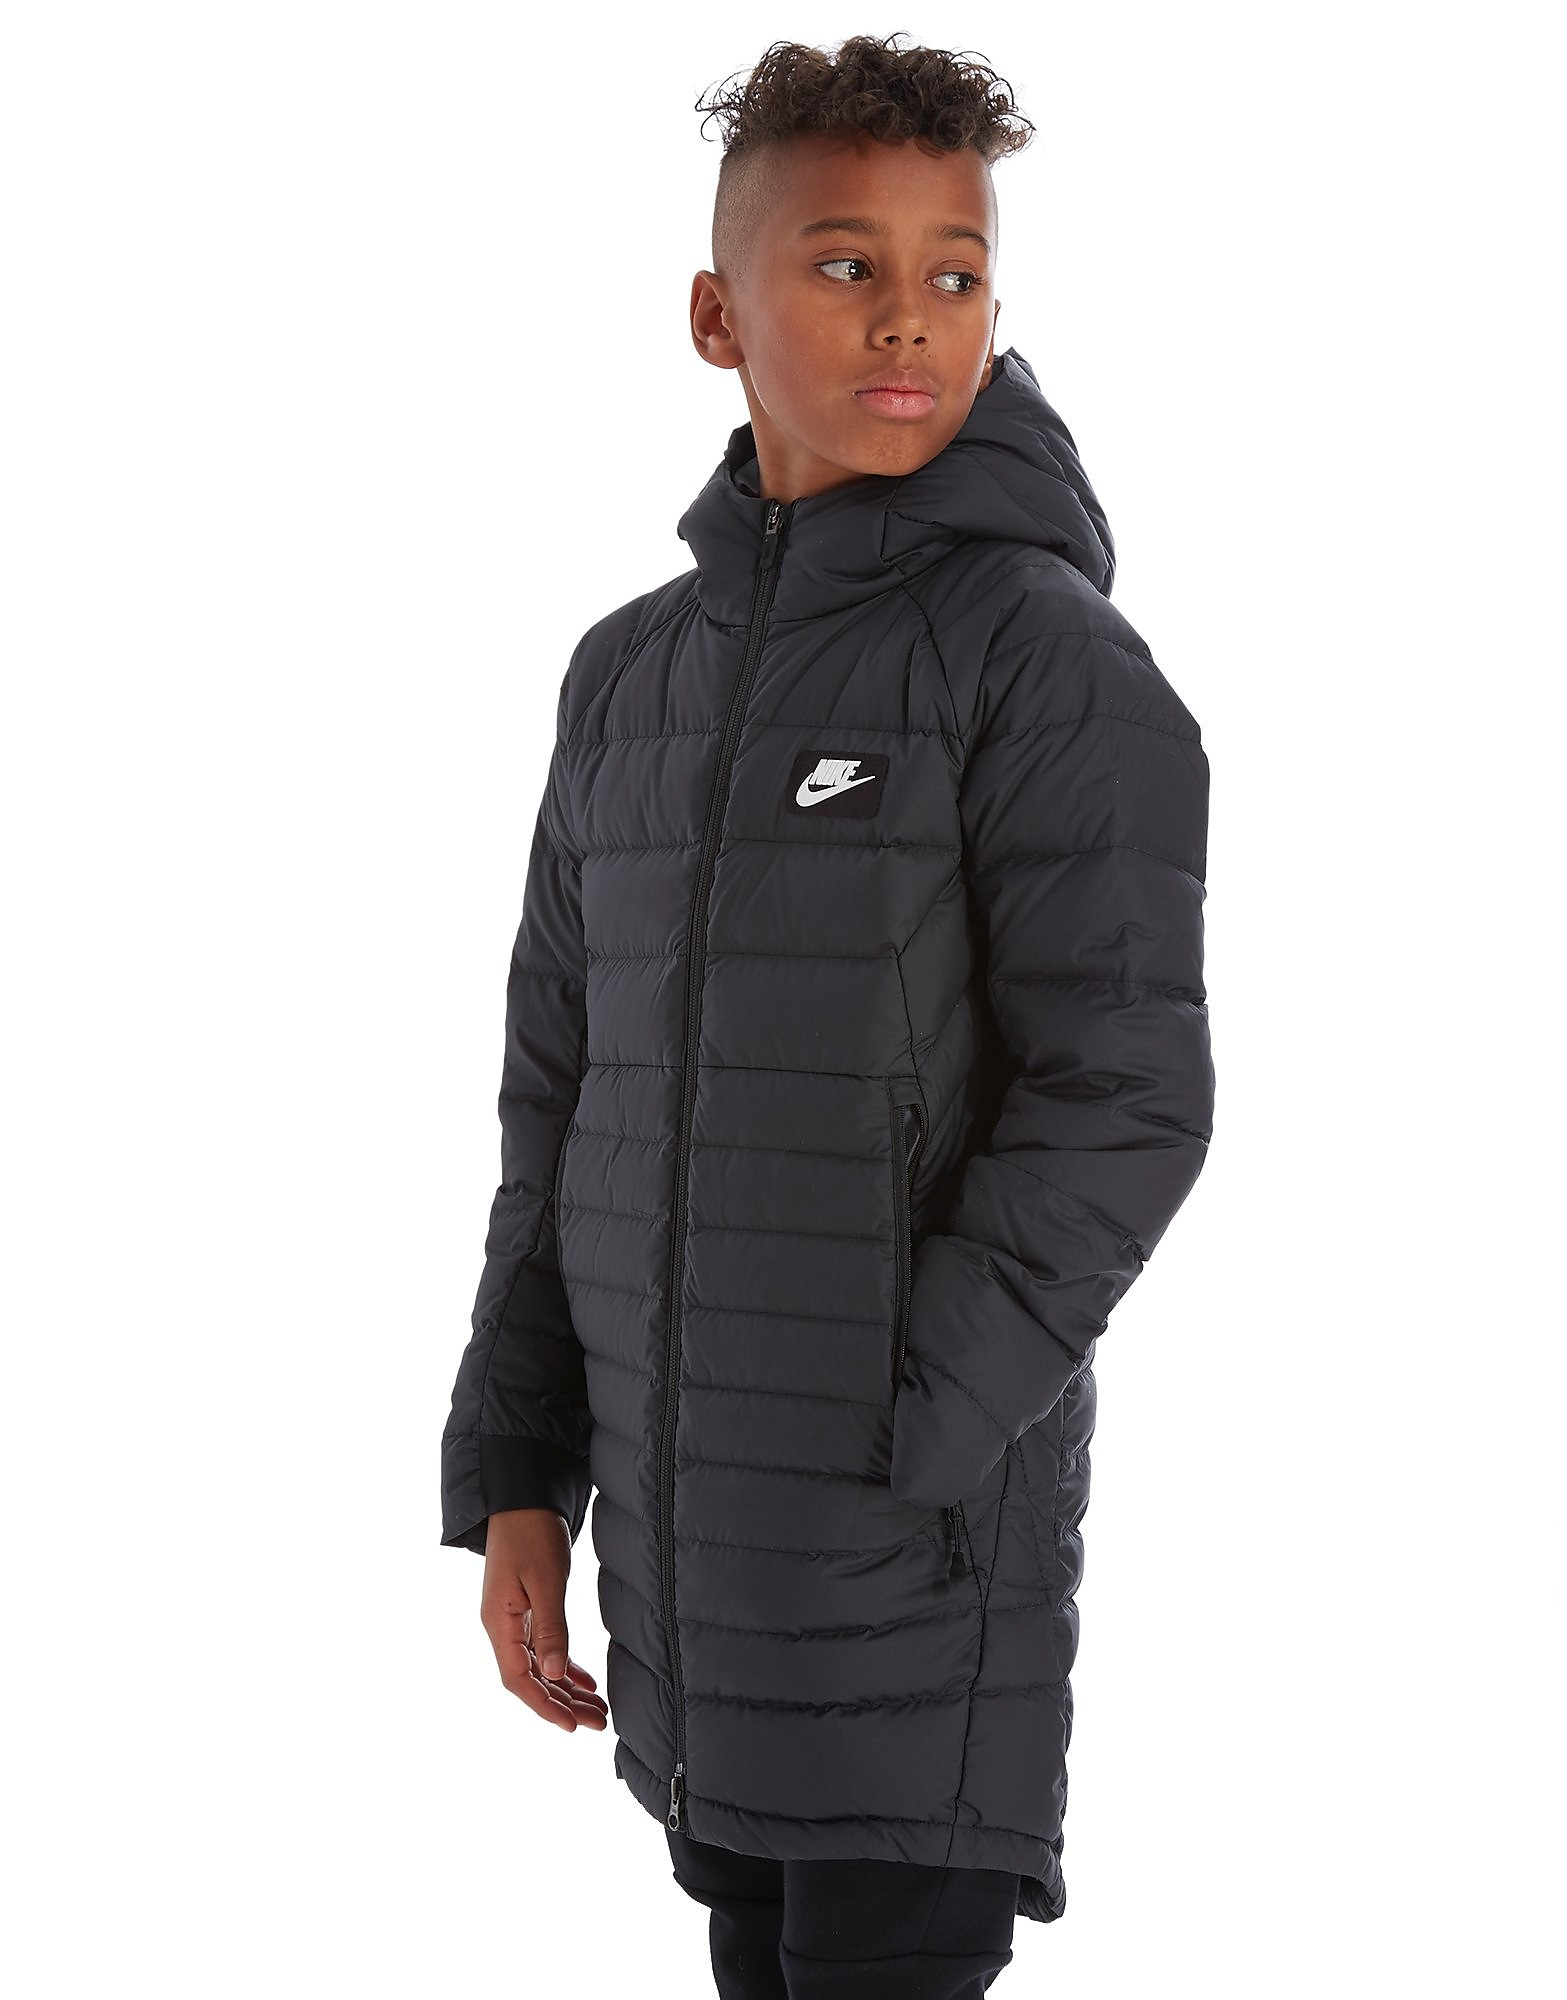 Nike Veste Parka Padded Junior